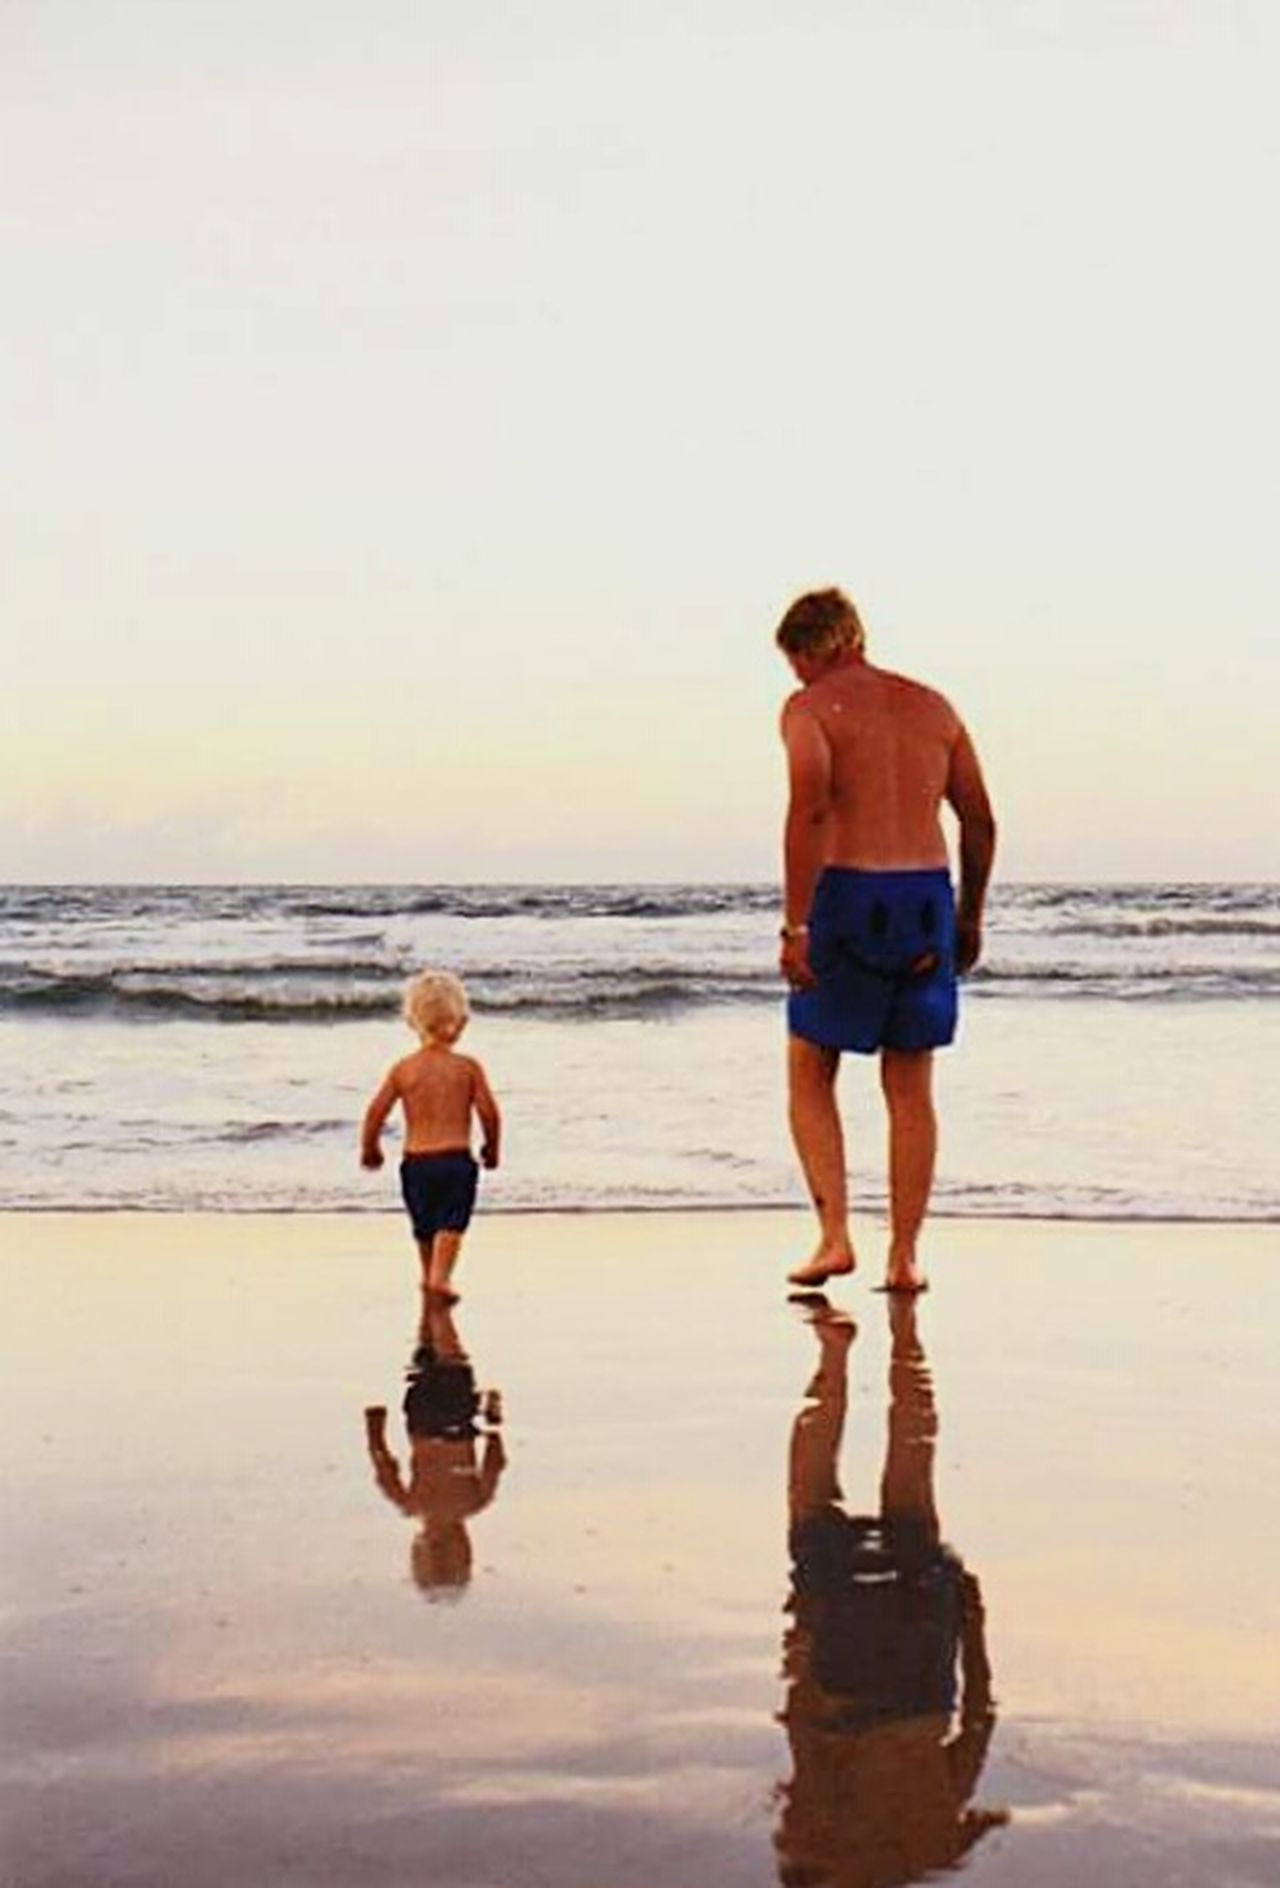 Father & Son Togetherness Beach Boys Son Childhood Outdoors Father Bonding Two People Fun Sand Enjoyment Leisure Activity Beach Photography Vacations Beach View Beachlovers Beach Walk Beachscape Beachtime Reflection Photography Refection In The Sand Reflection_collection Daytona Beach